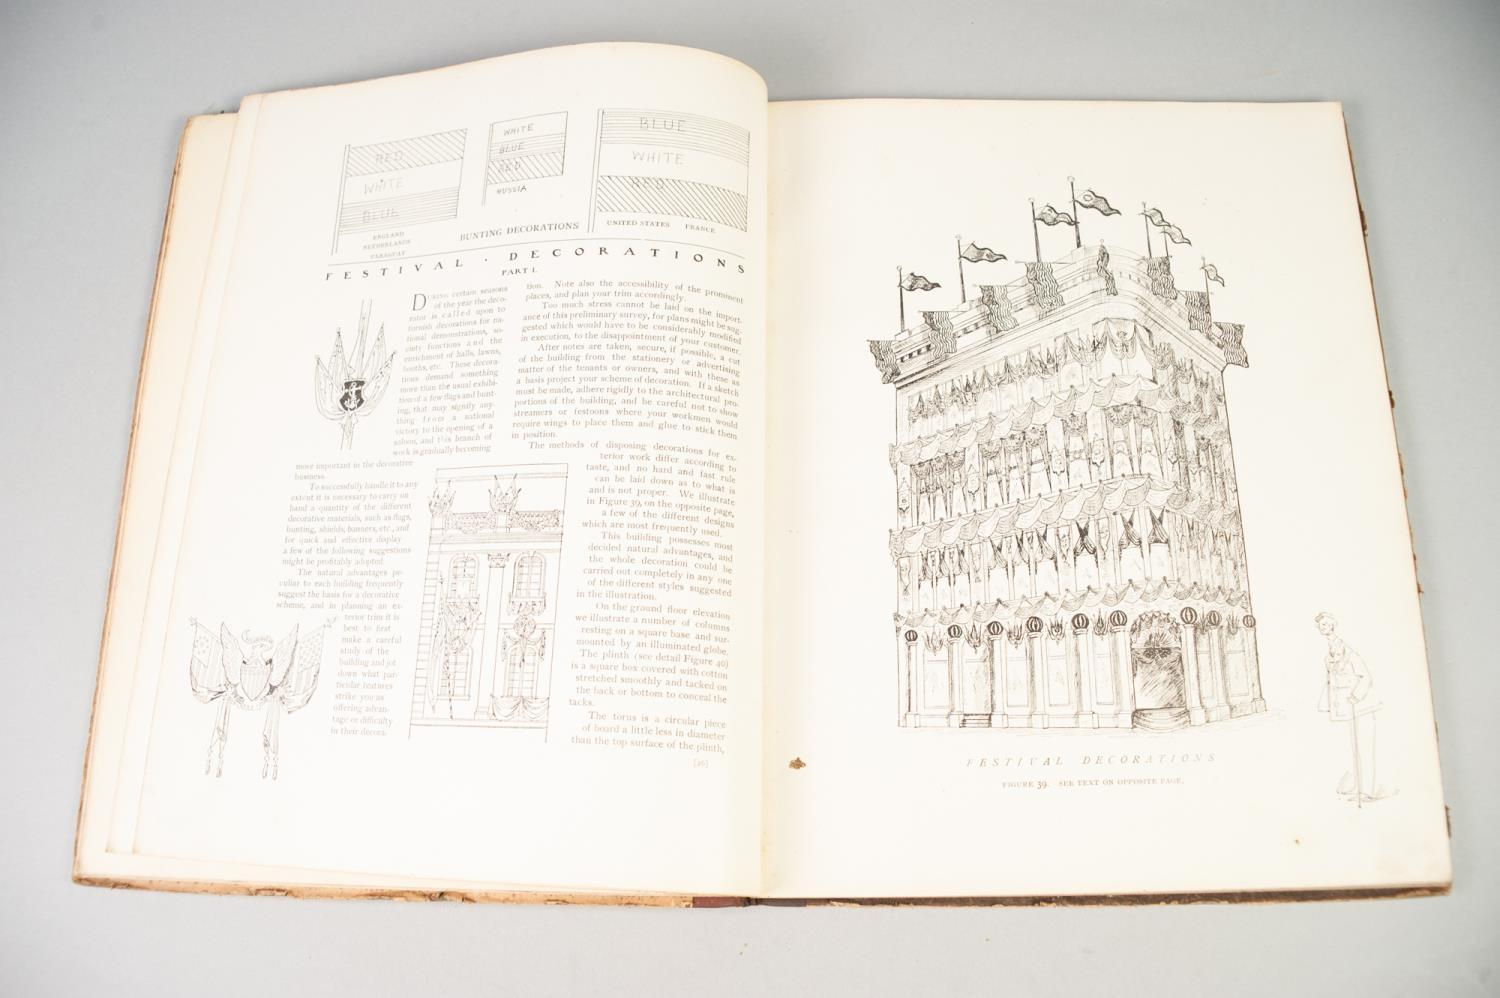 Lot 82 - STEPHENSON, CUTTING AND DRAPING, publisher Clifford and Lawton (c. 1905), illustrated with over